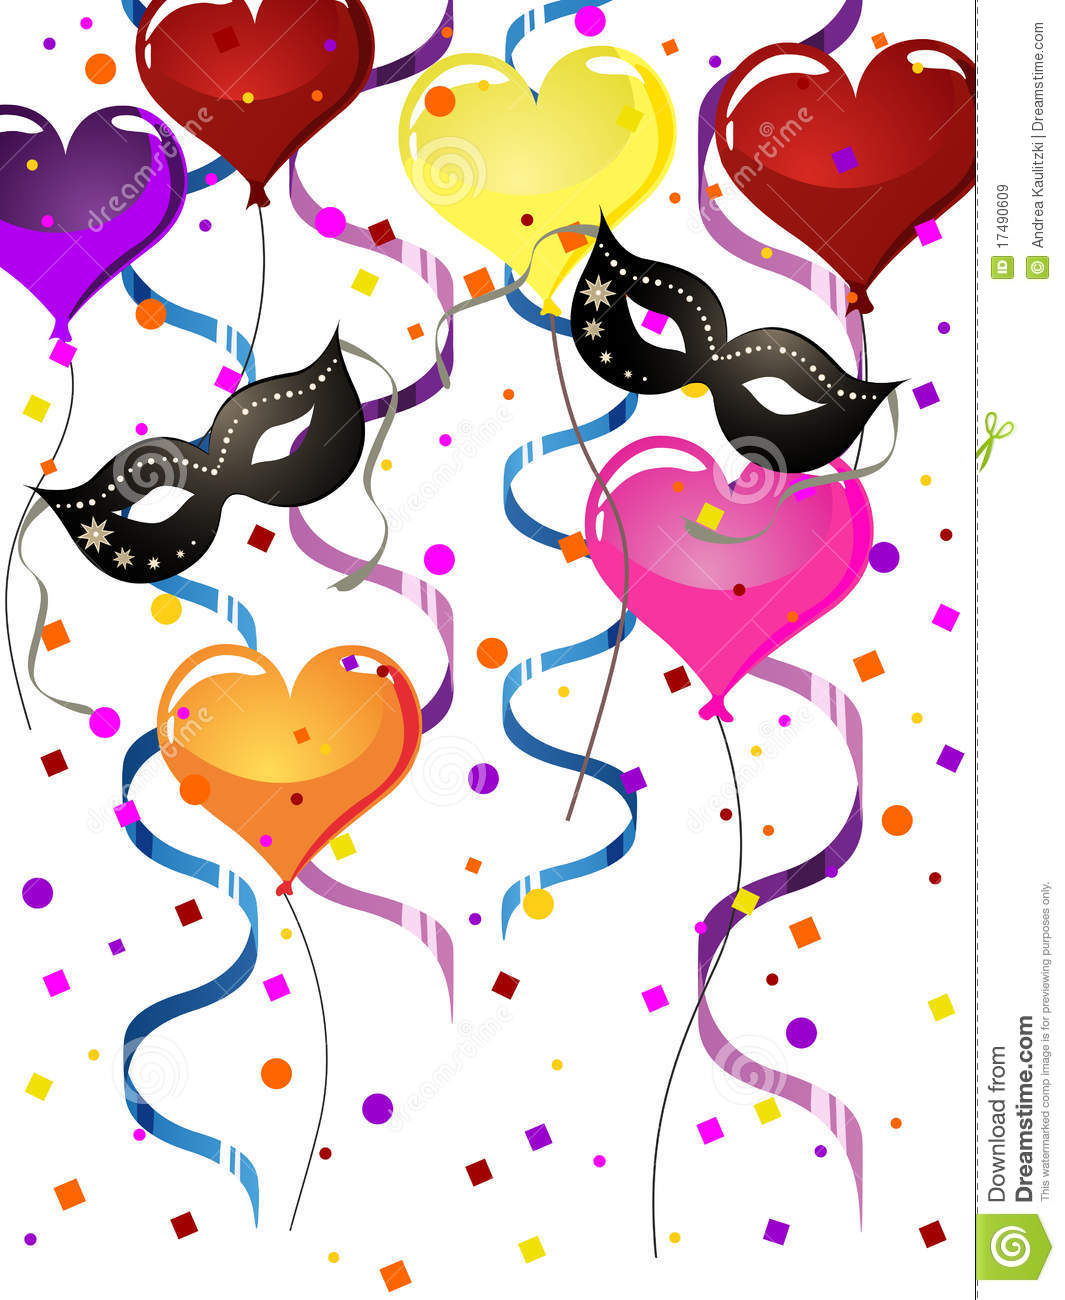 Carnival party stock vector. Image of carnival, party ... X 23 Costume